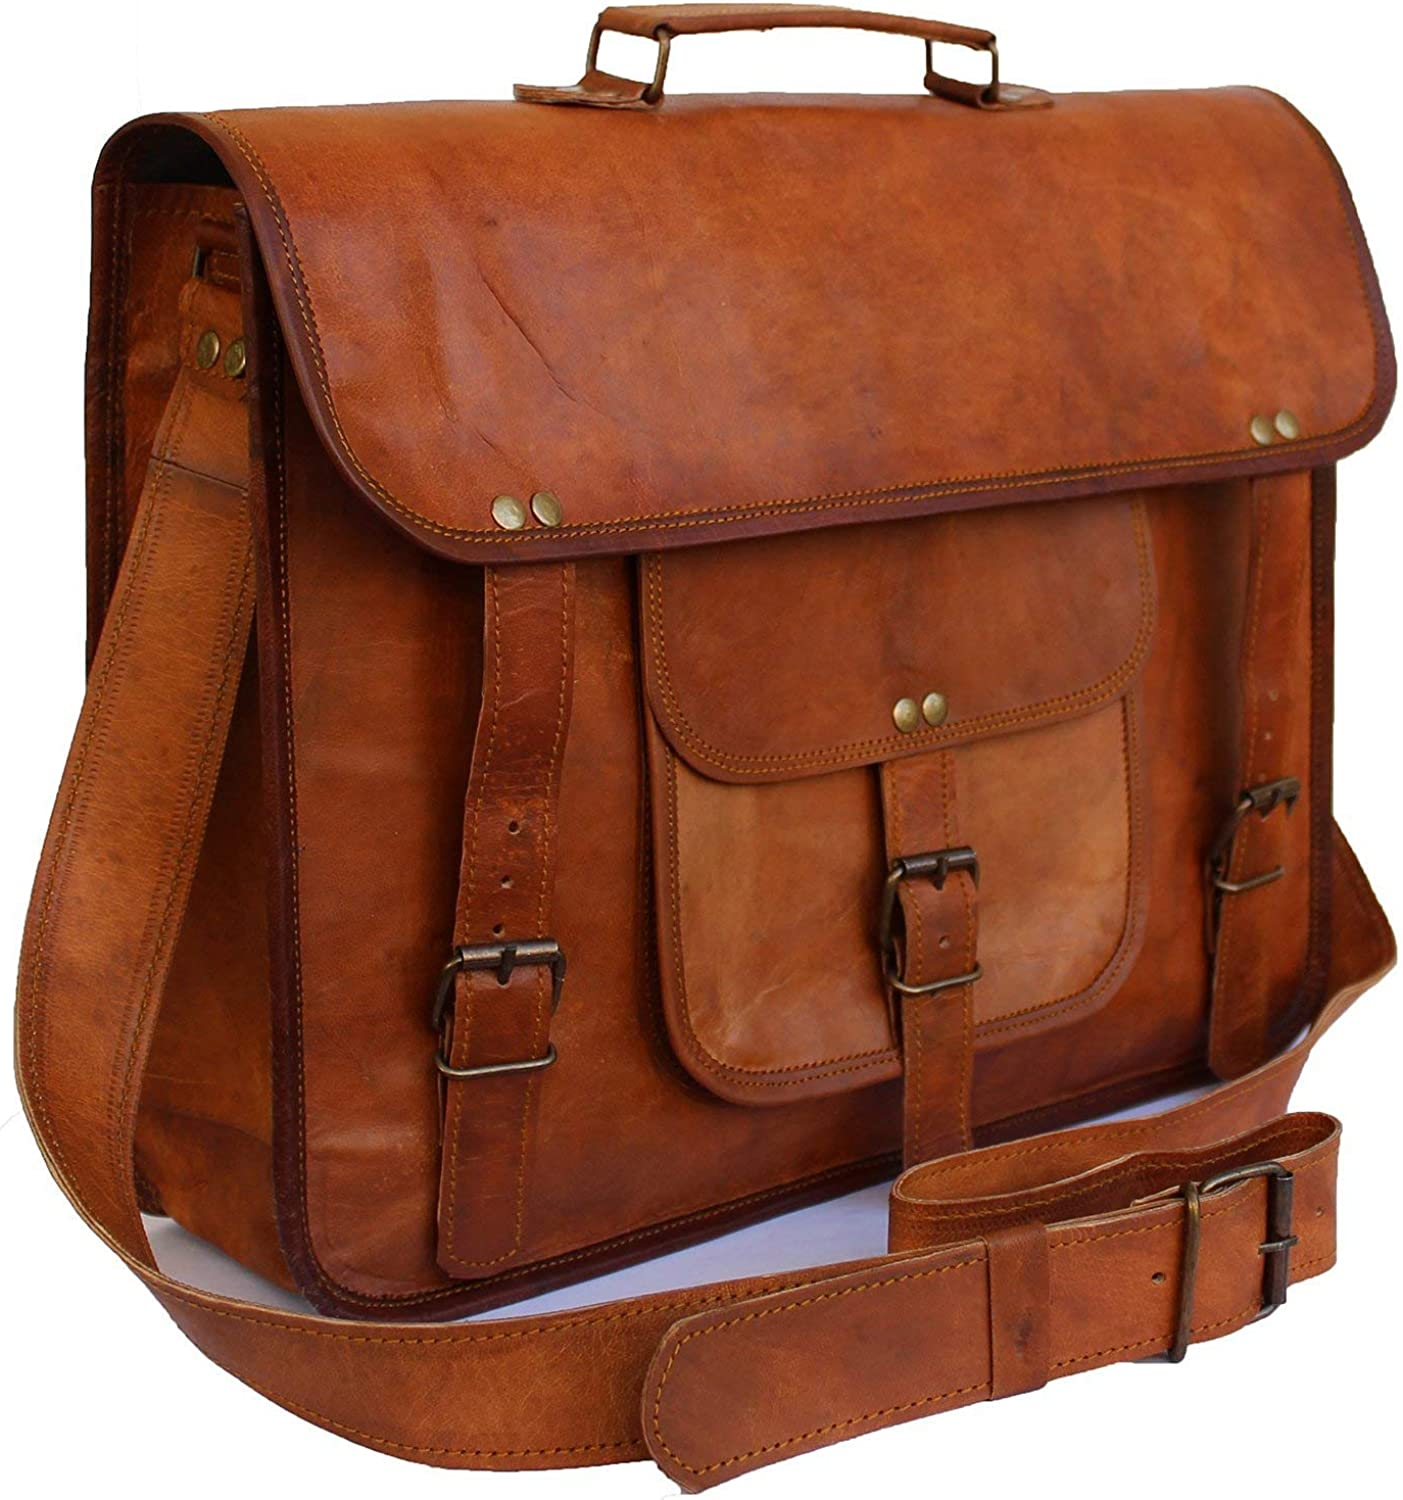 Prastara 15 Inch Vintage Men s Leather Handmade Briefcase Best Laptop Messenger Bag Satchel shoulder bag Brown